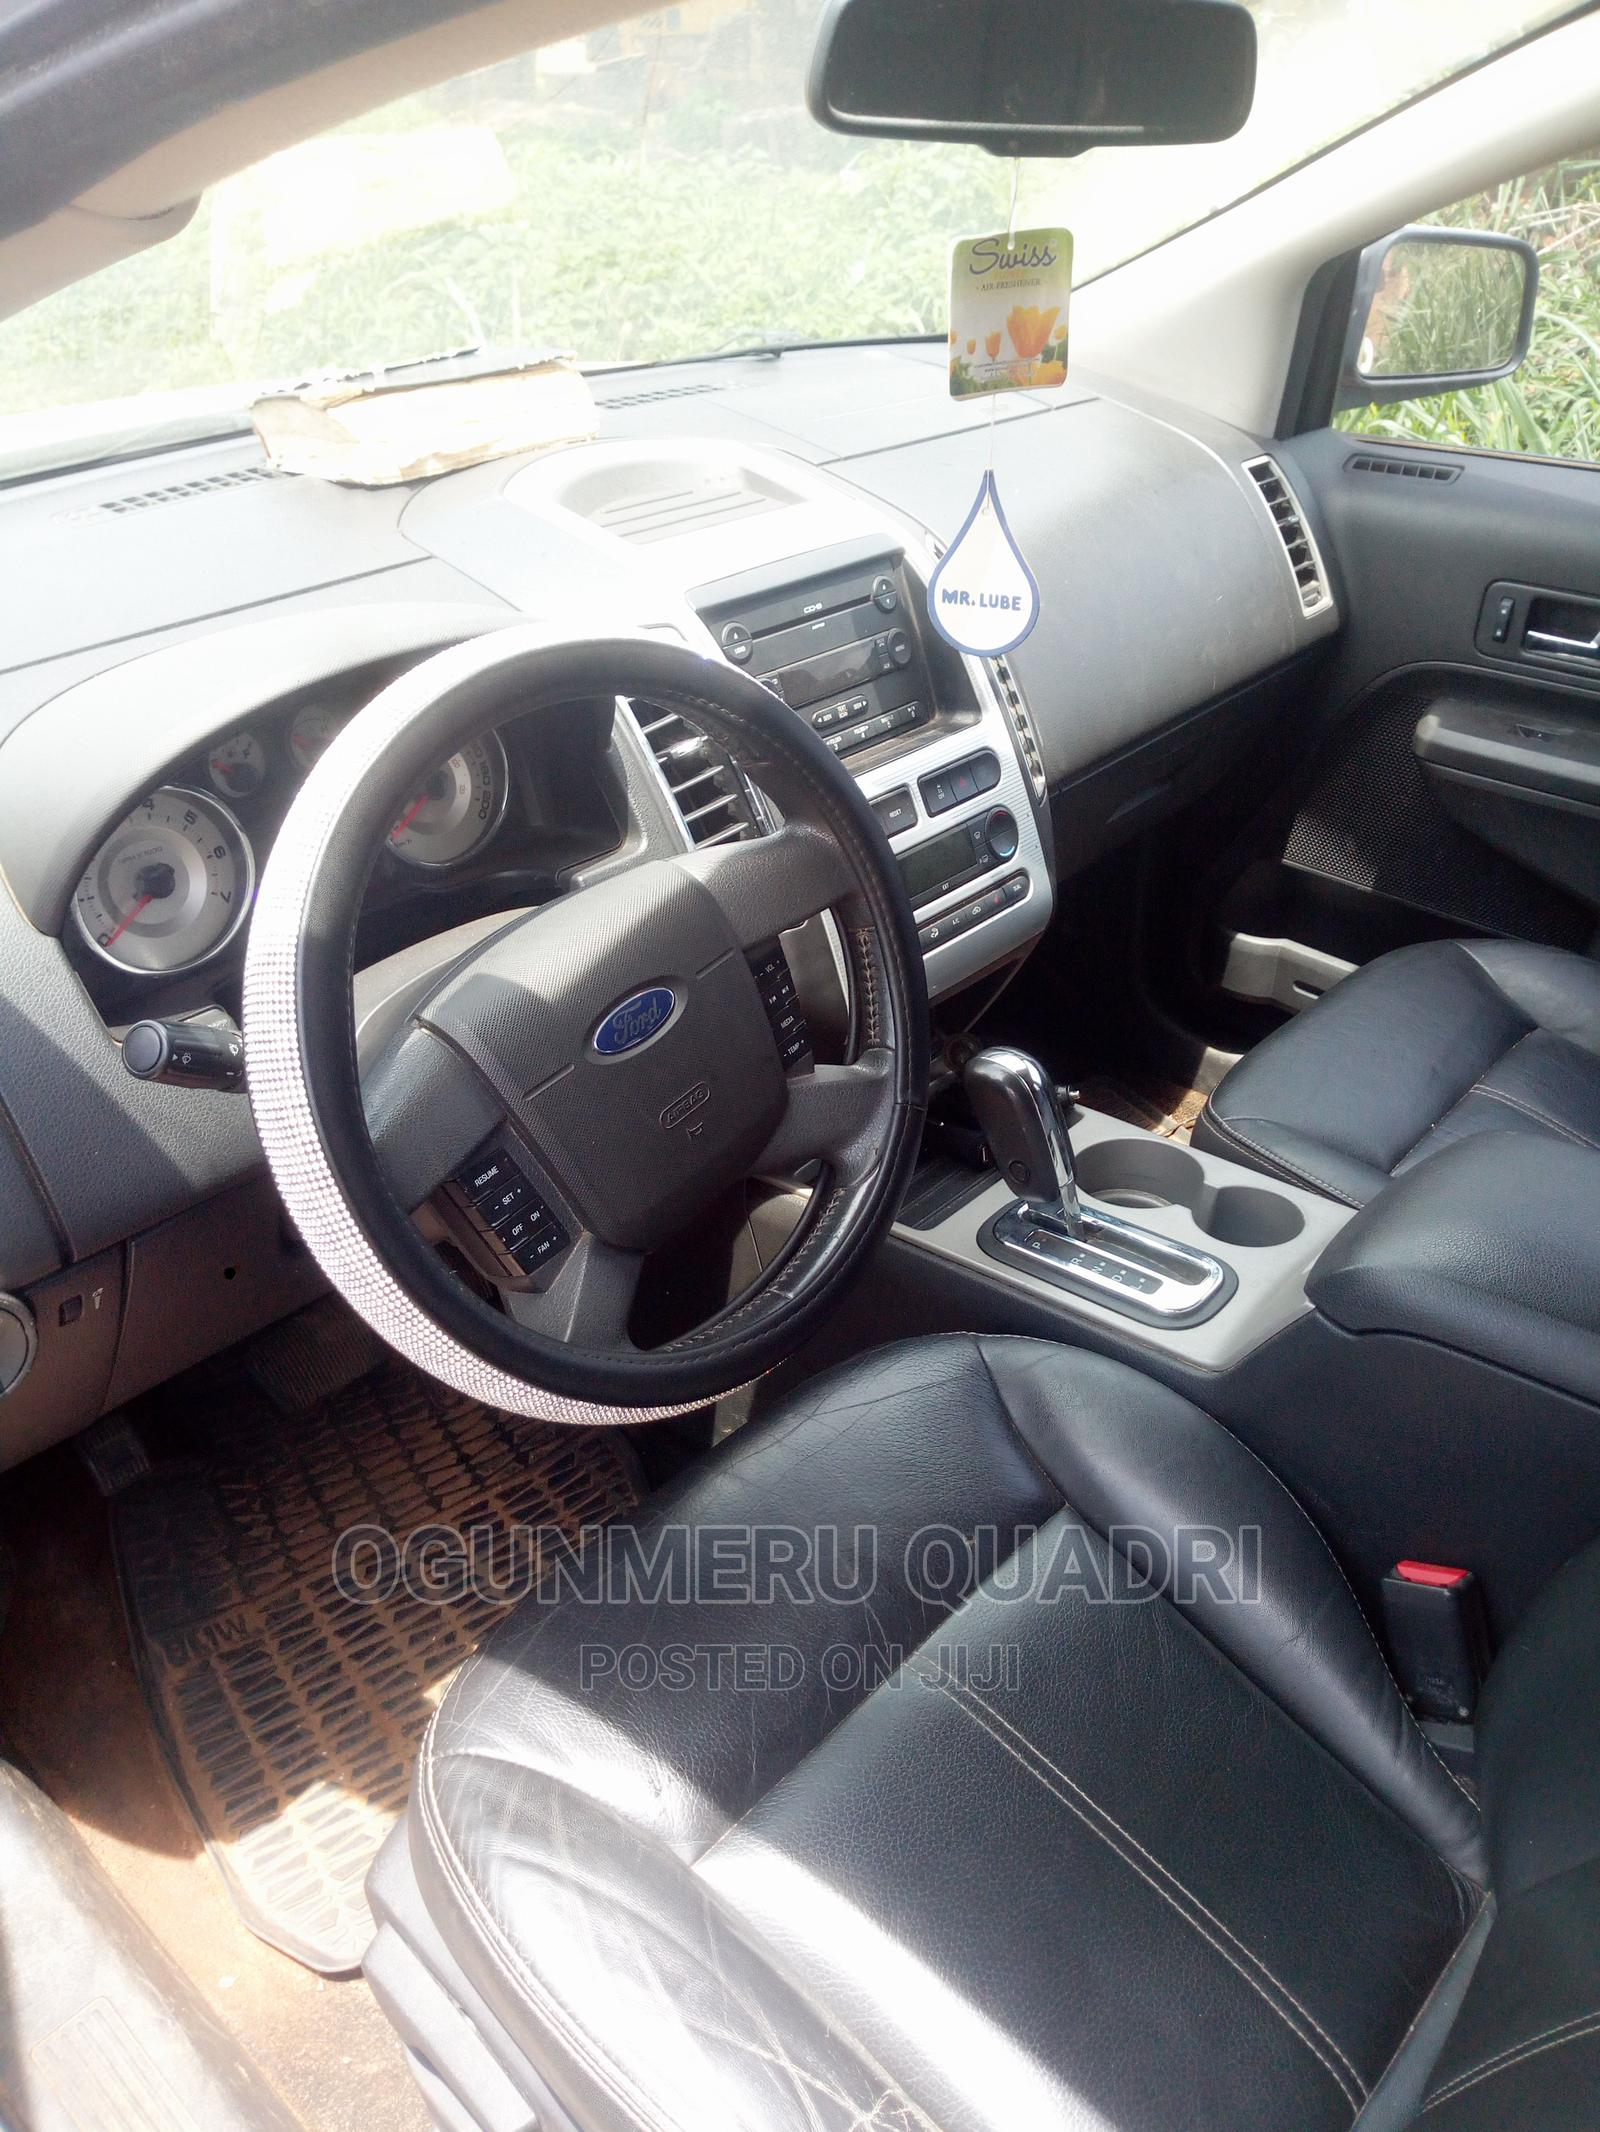 Archive: Ford Edge 2007 SE 4dr FWD (3.5L 6cyl 6A) Beige